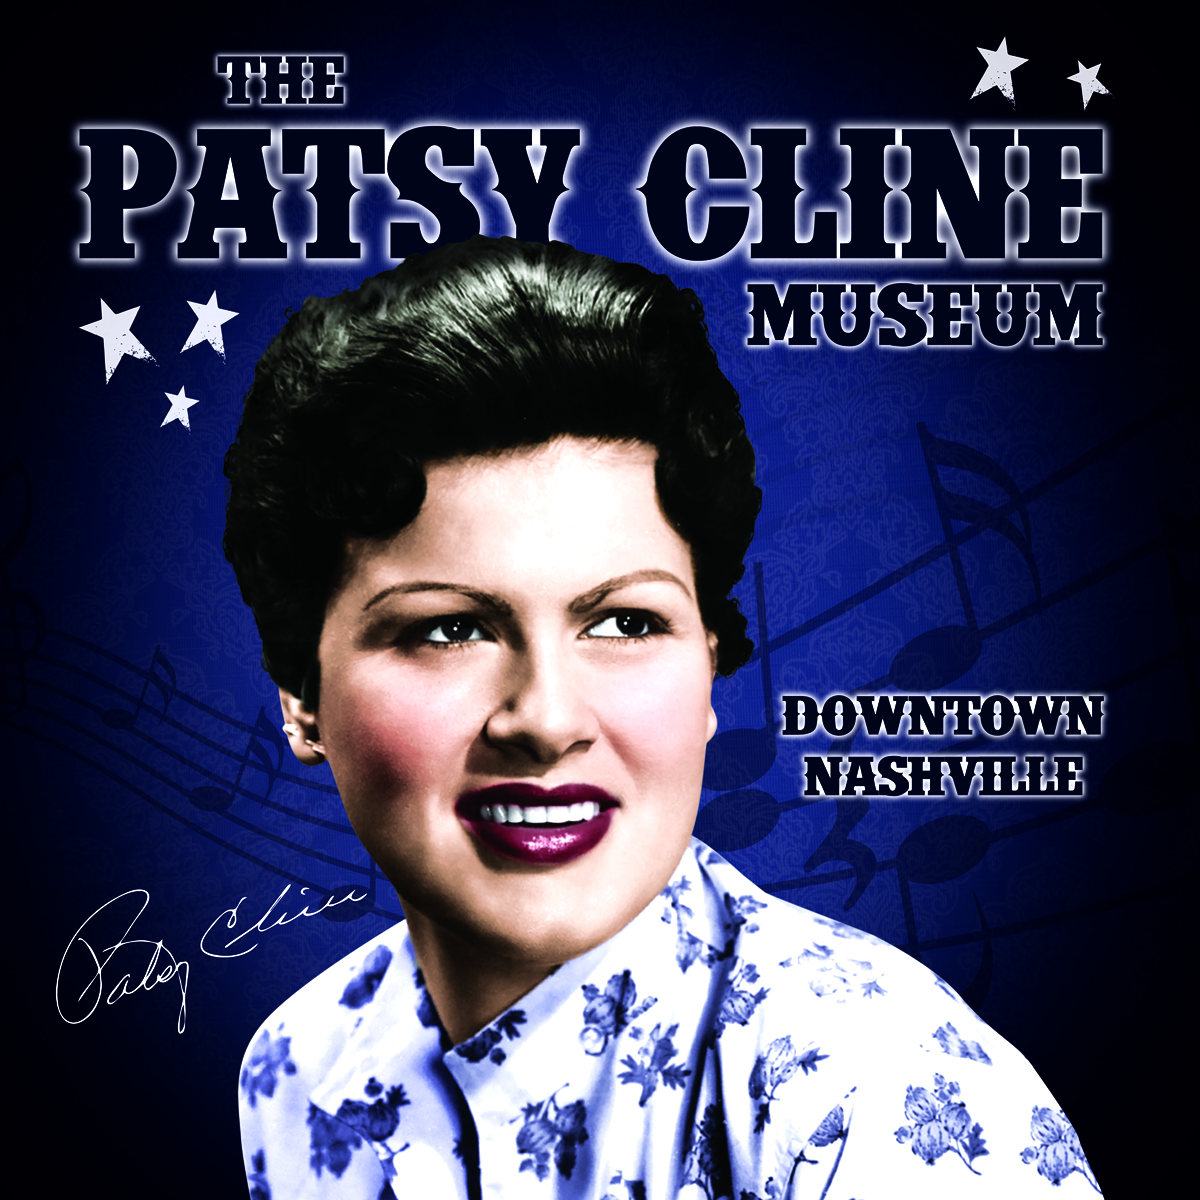 Patsy Cline Museum to Open in Nashville, Tennessee